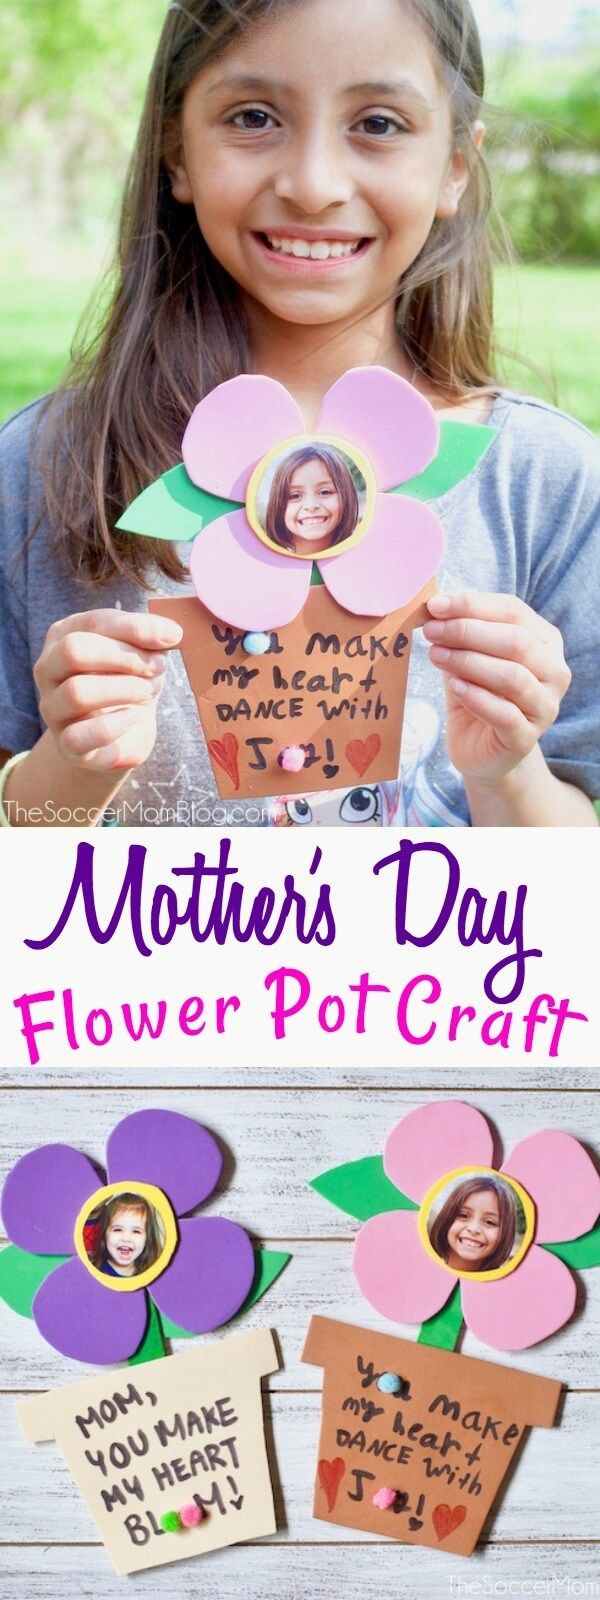 A sweet kid-made photo flower craft just for mom on her special day! Whether you...